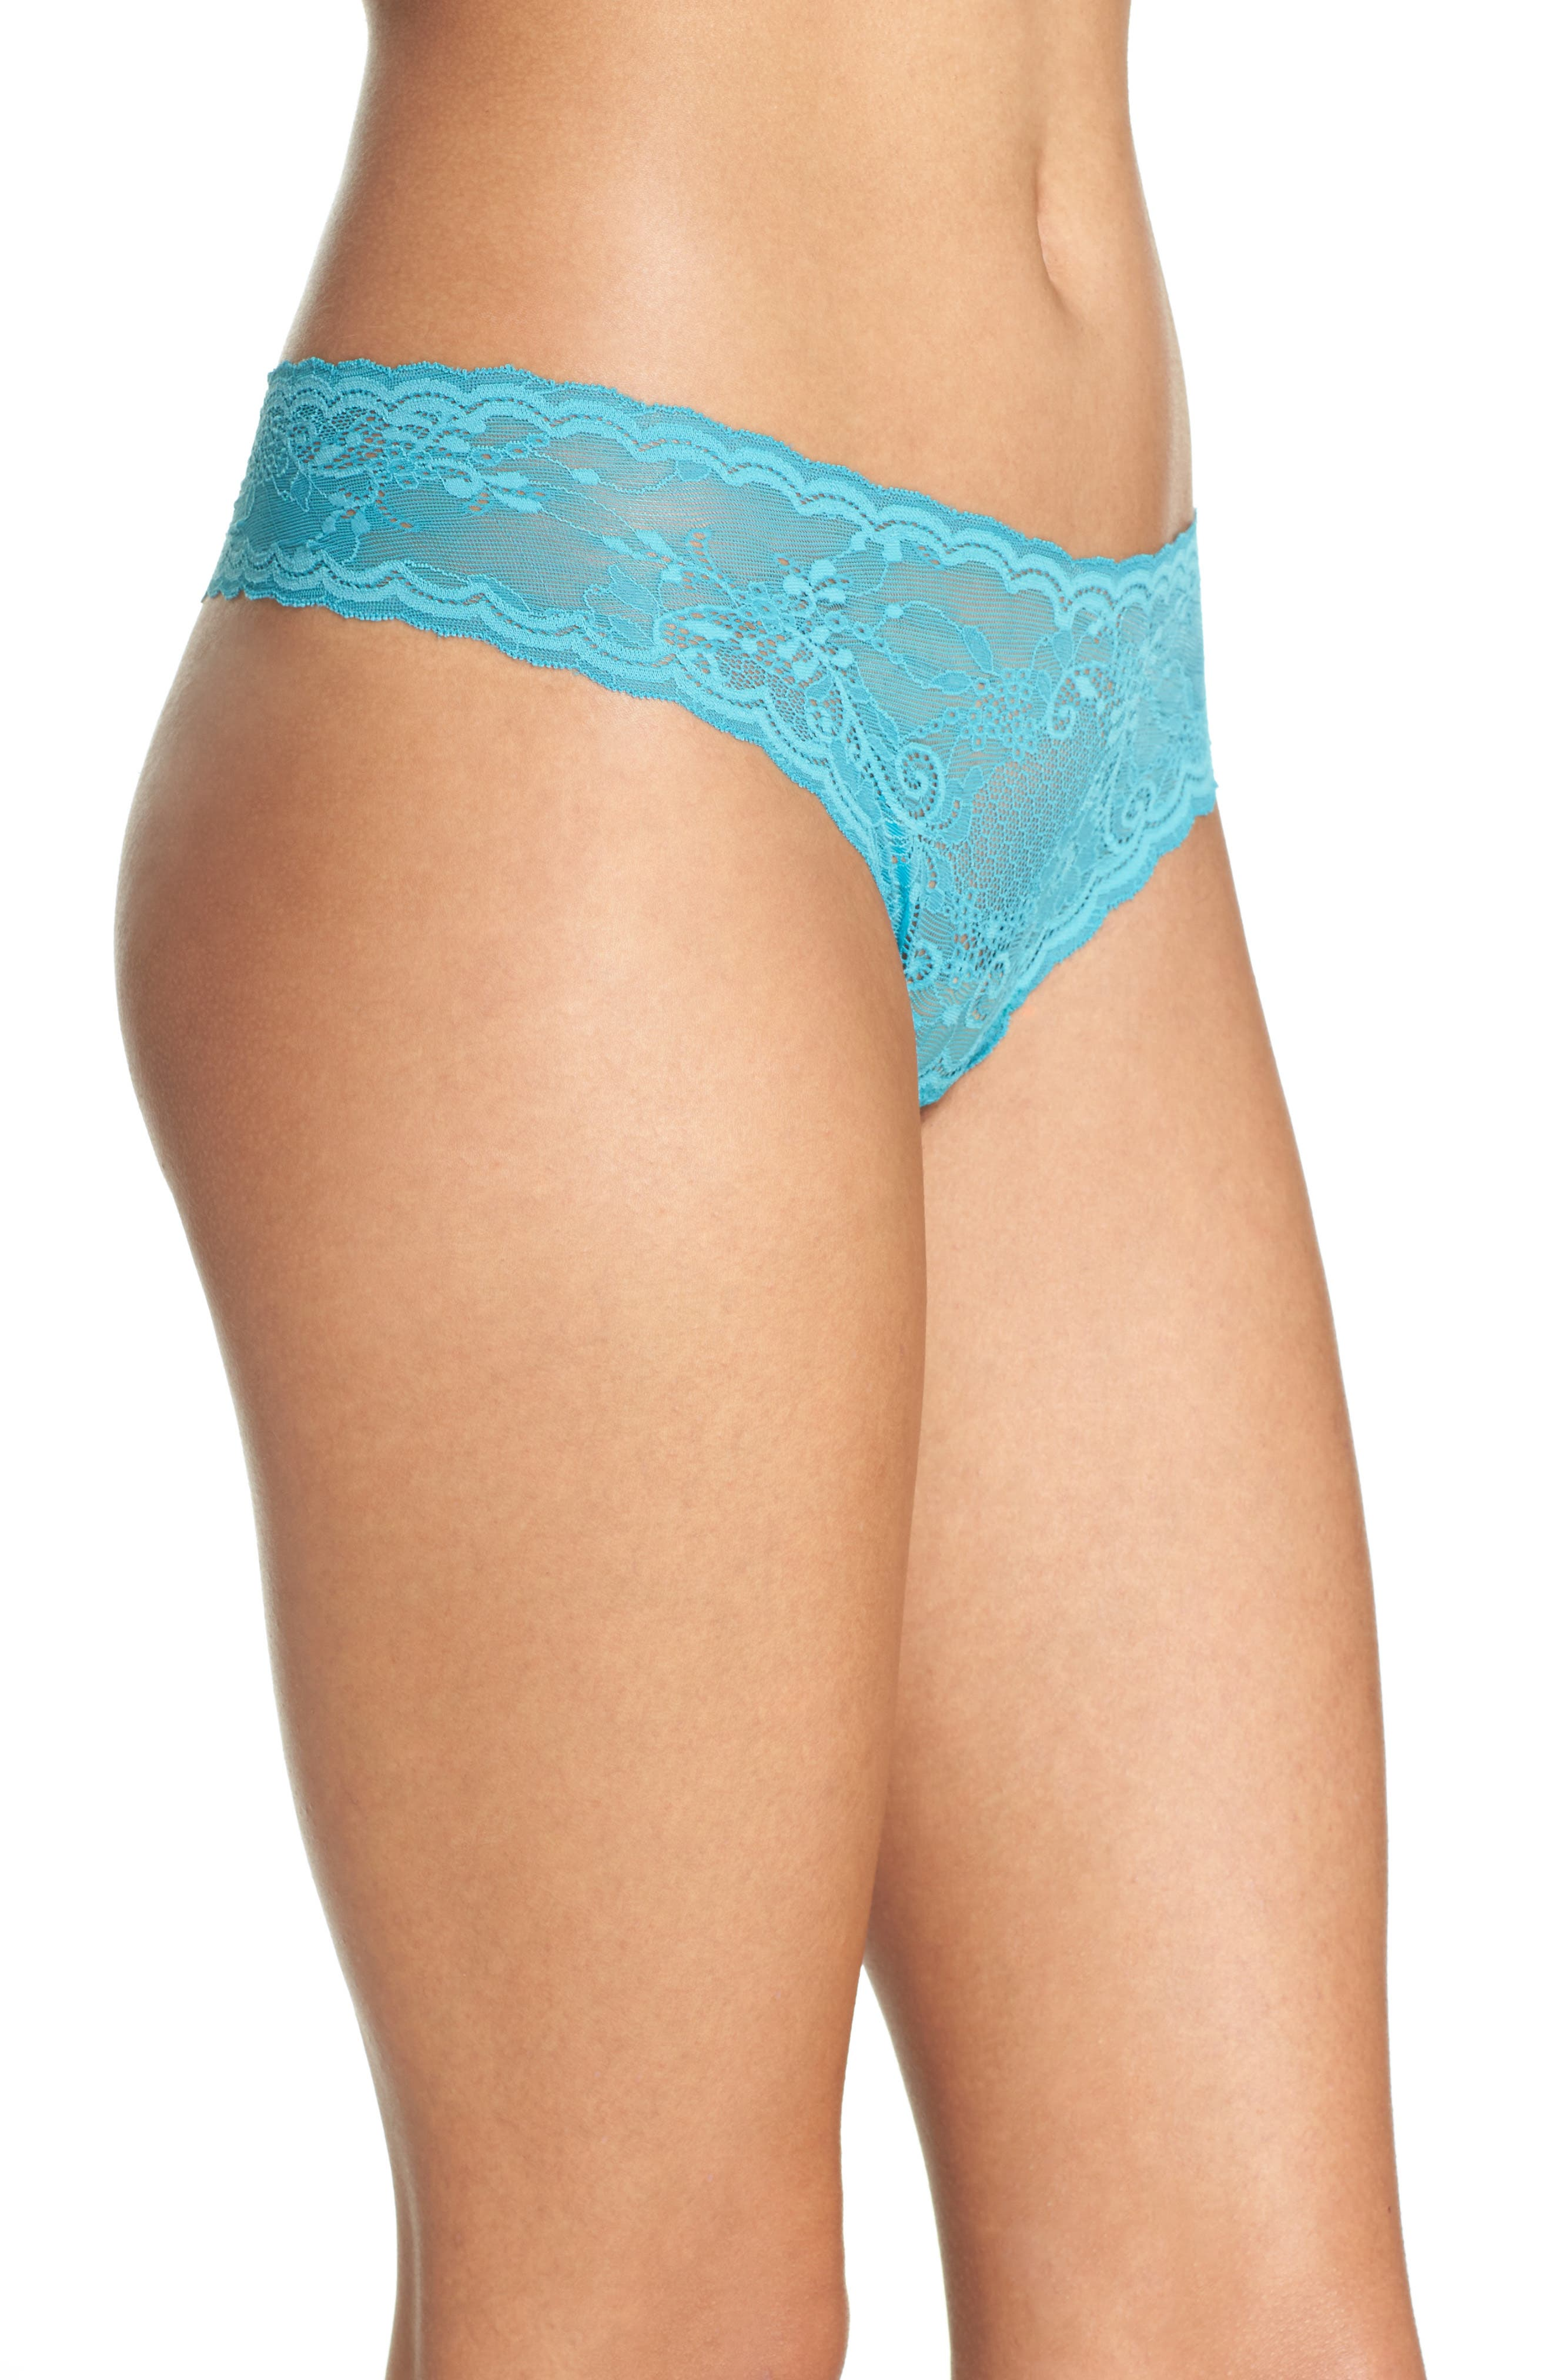 'Trenta' Low Rise Lace Thong,                             Alternate thumbnail 92, color,